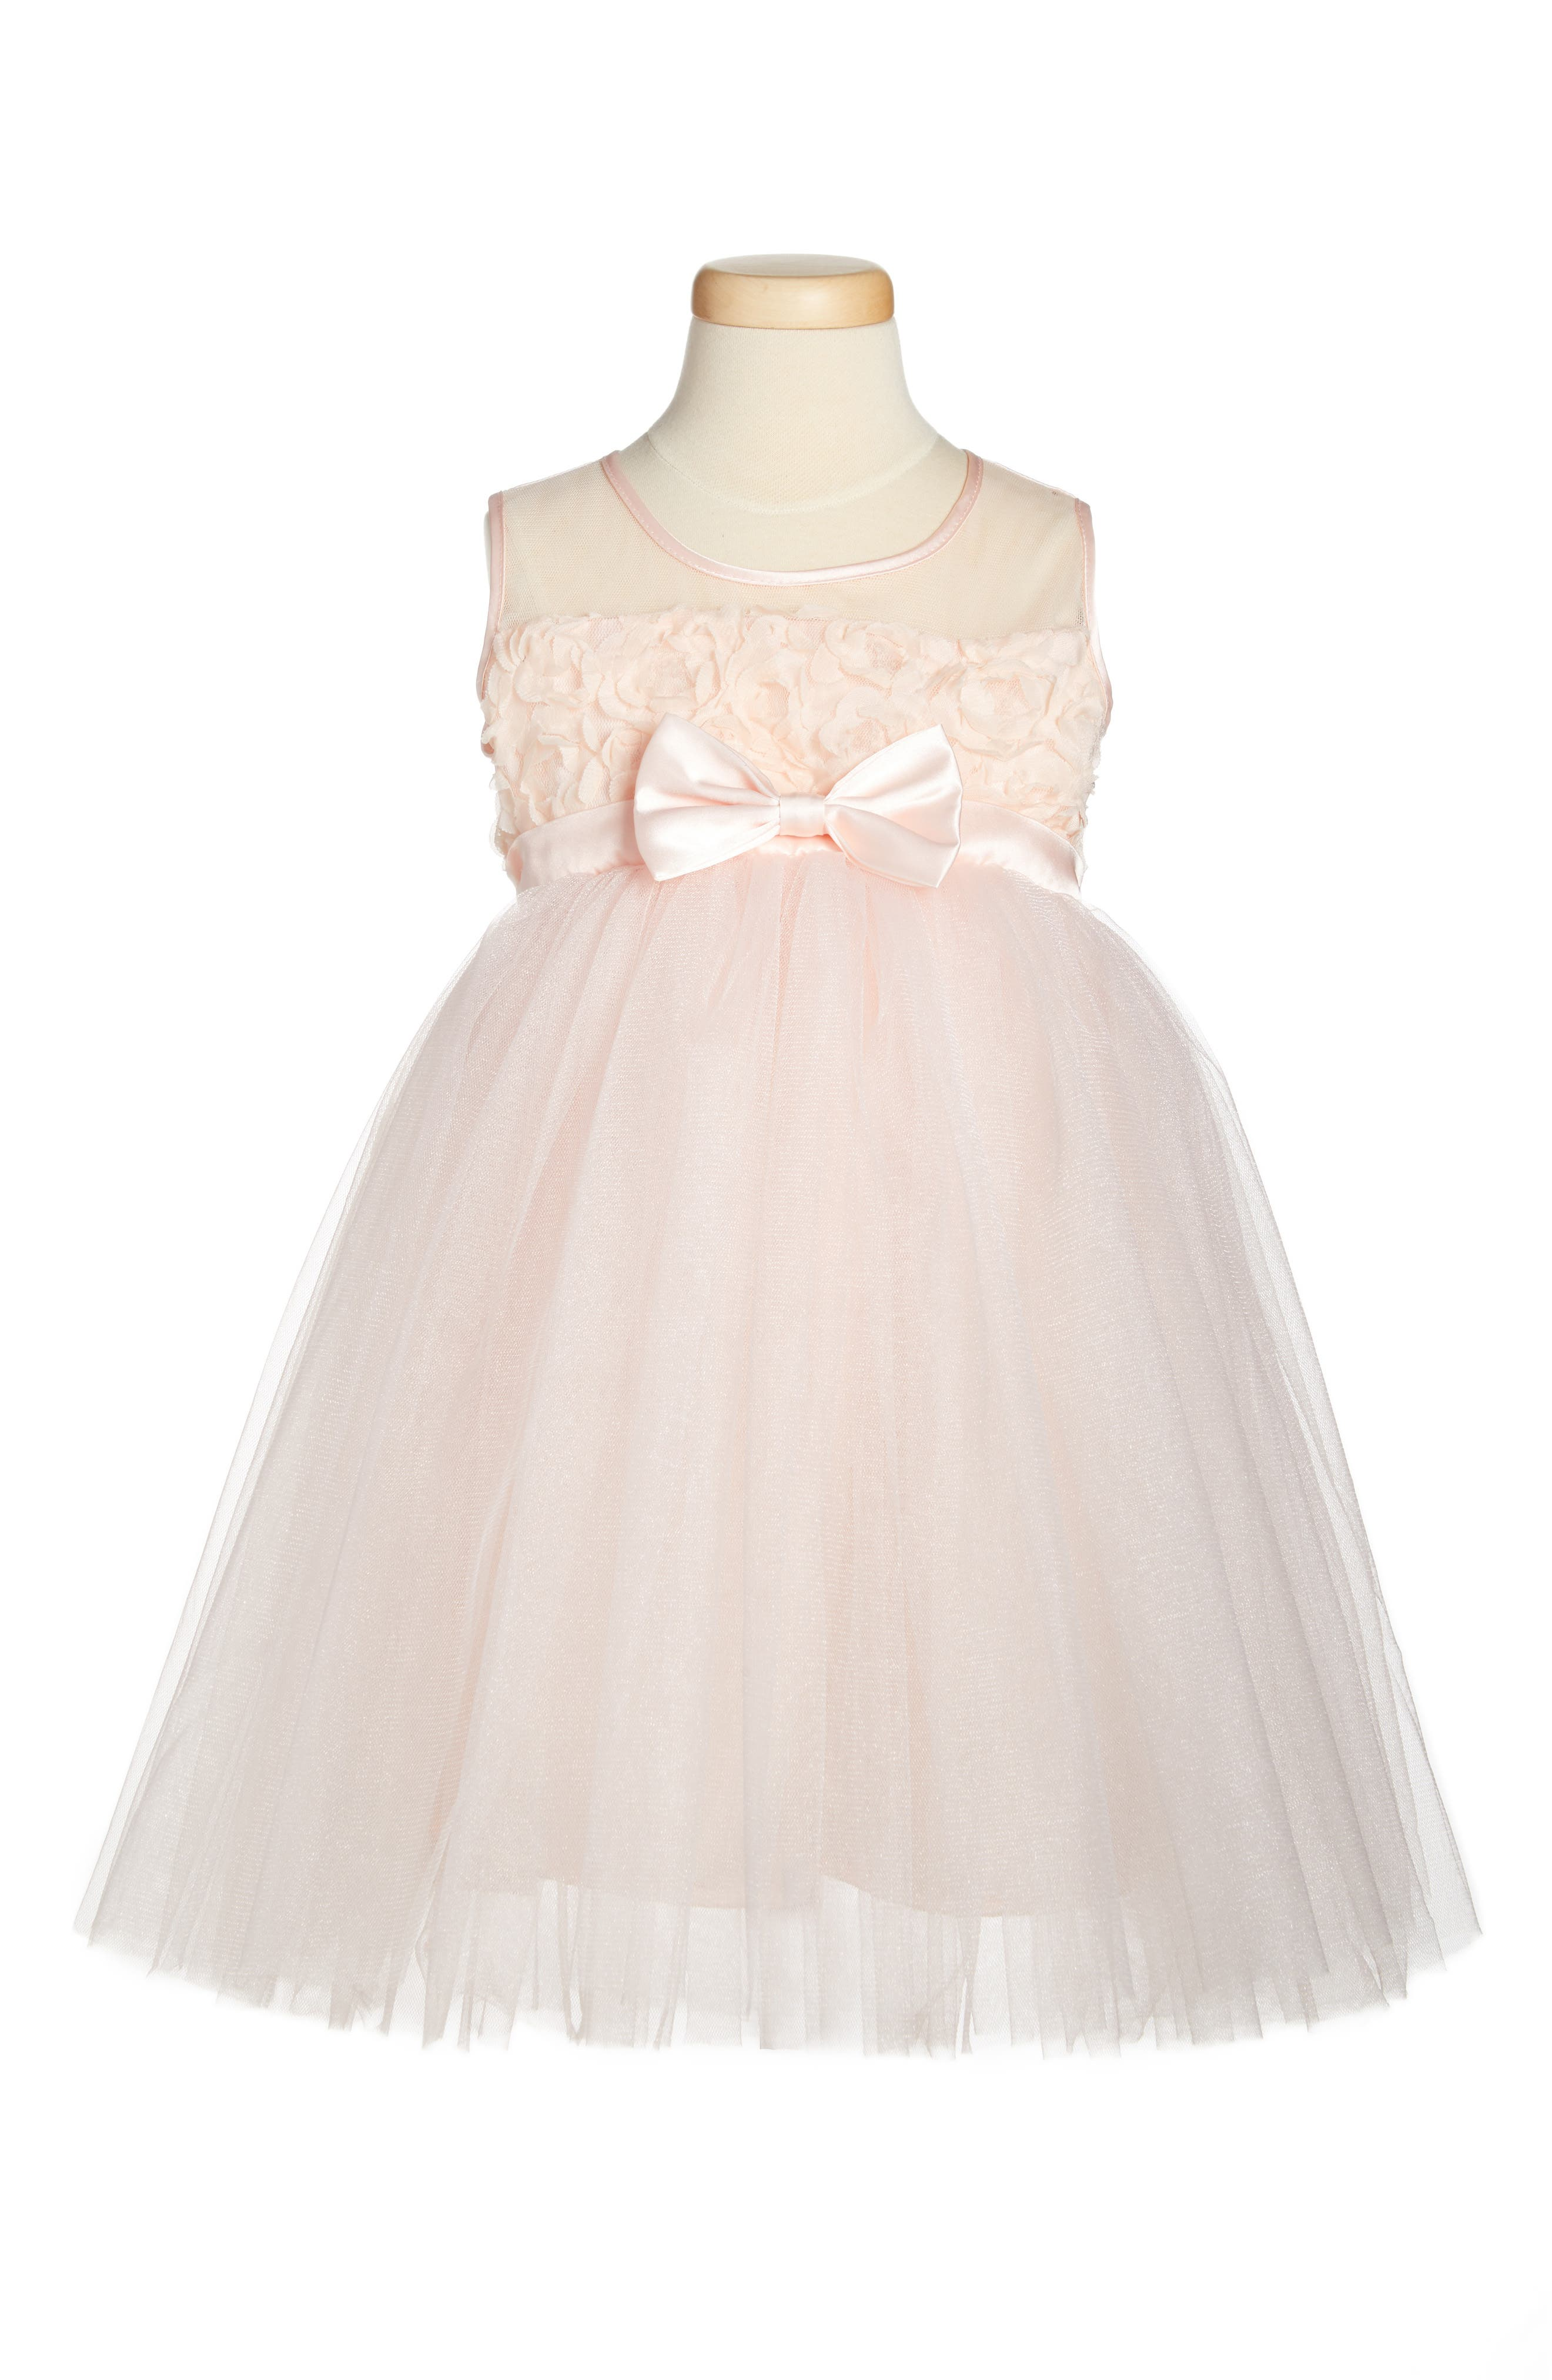 Floral Tulle Dress,                             Main thumbnail 1, color,                             PINK